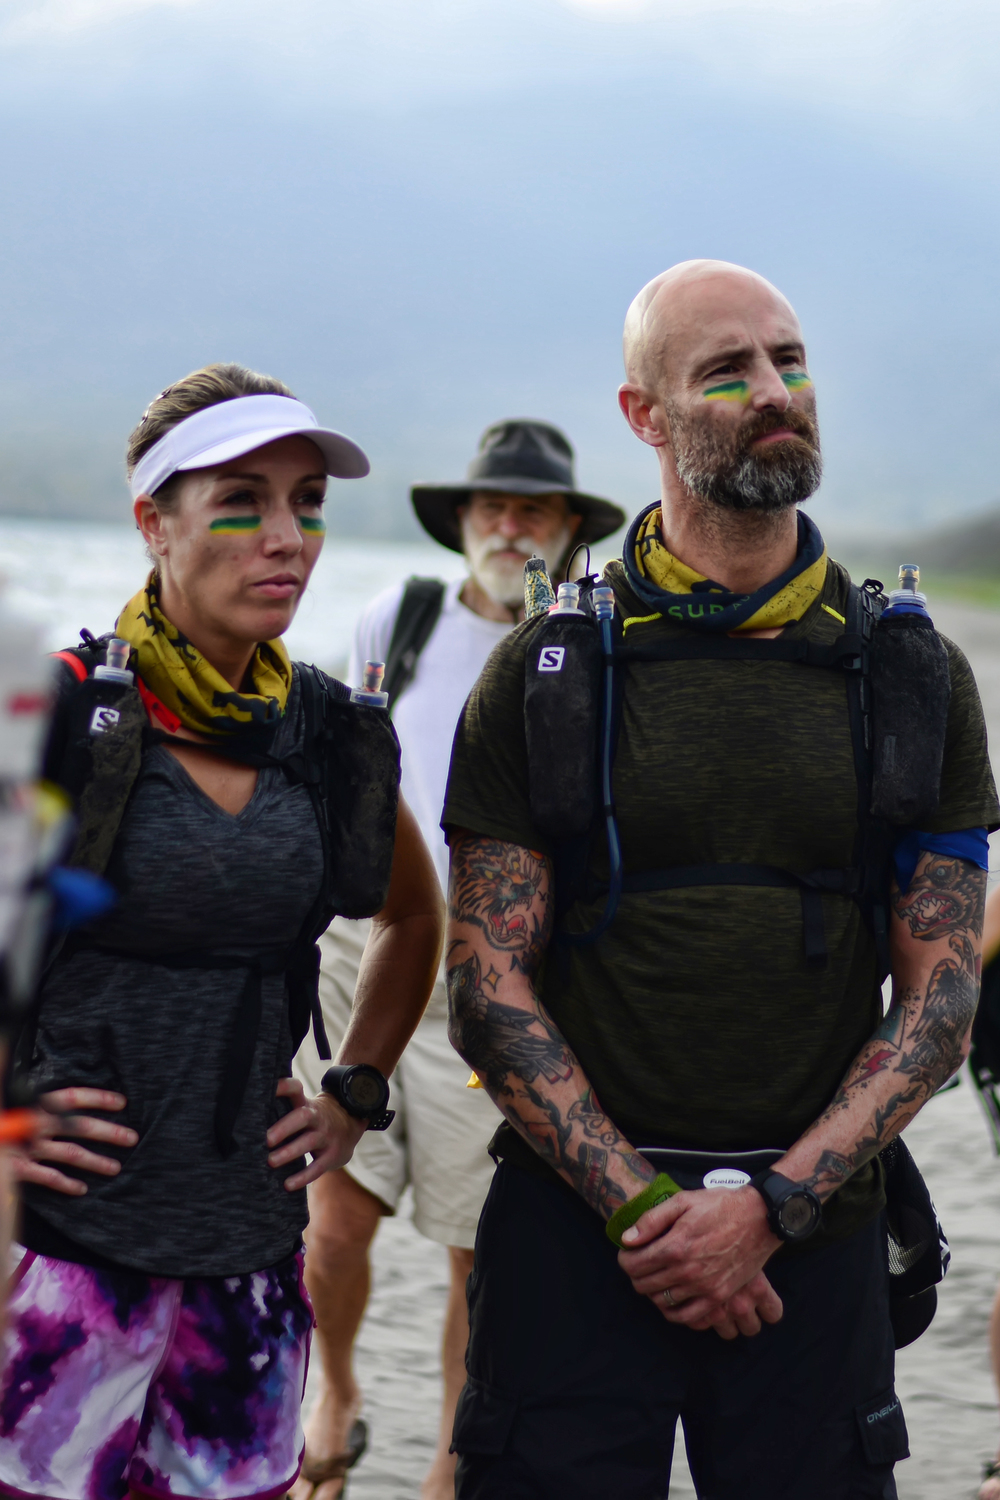 BUCKLEY'S CHANCE & SURVIVAL RUN AUSTRALIA are produced and directed by Chief Brabon and Emilie Brabon-Hames, 2-time 1st & 2nd place finishers (overall) of the Hunter Gatherer 50km Ultra, and internationally renowned fitness experts. Shown here at the 2016 SURVIVAL RUN NICARAGUA